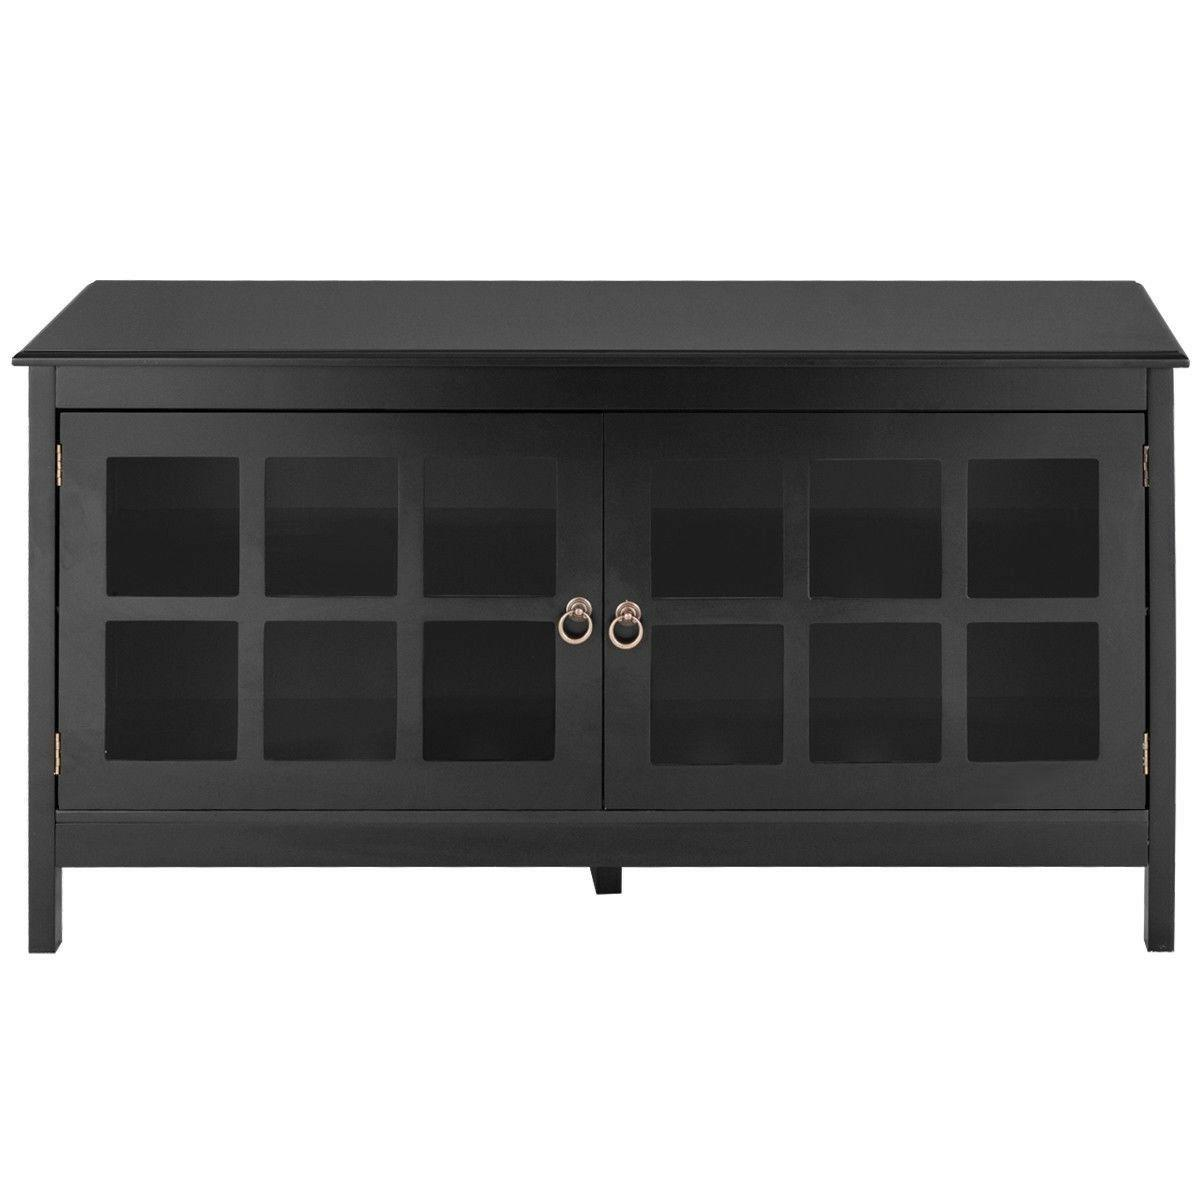 Black TV Wood Storage Console Entertainment Media Cabinet